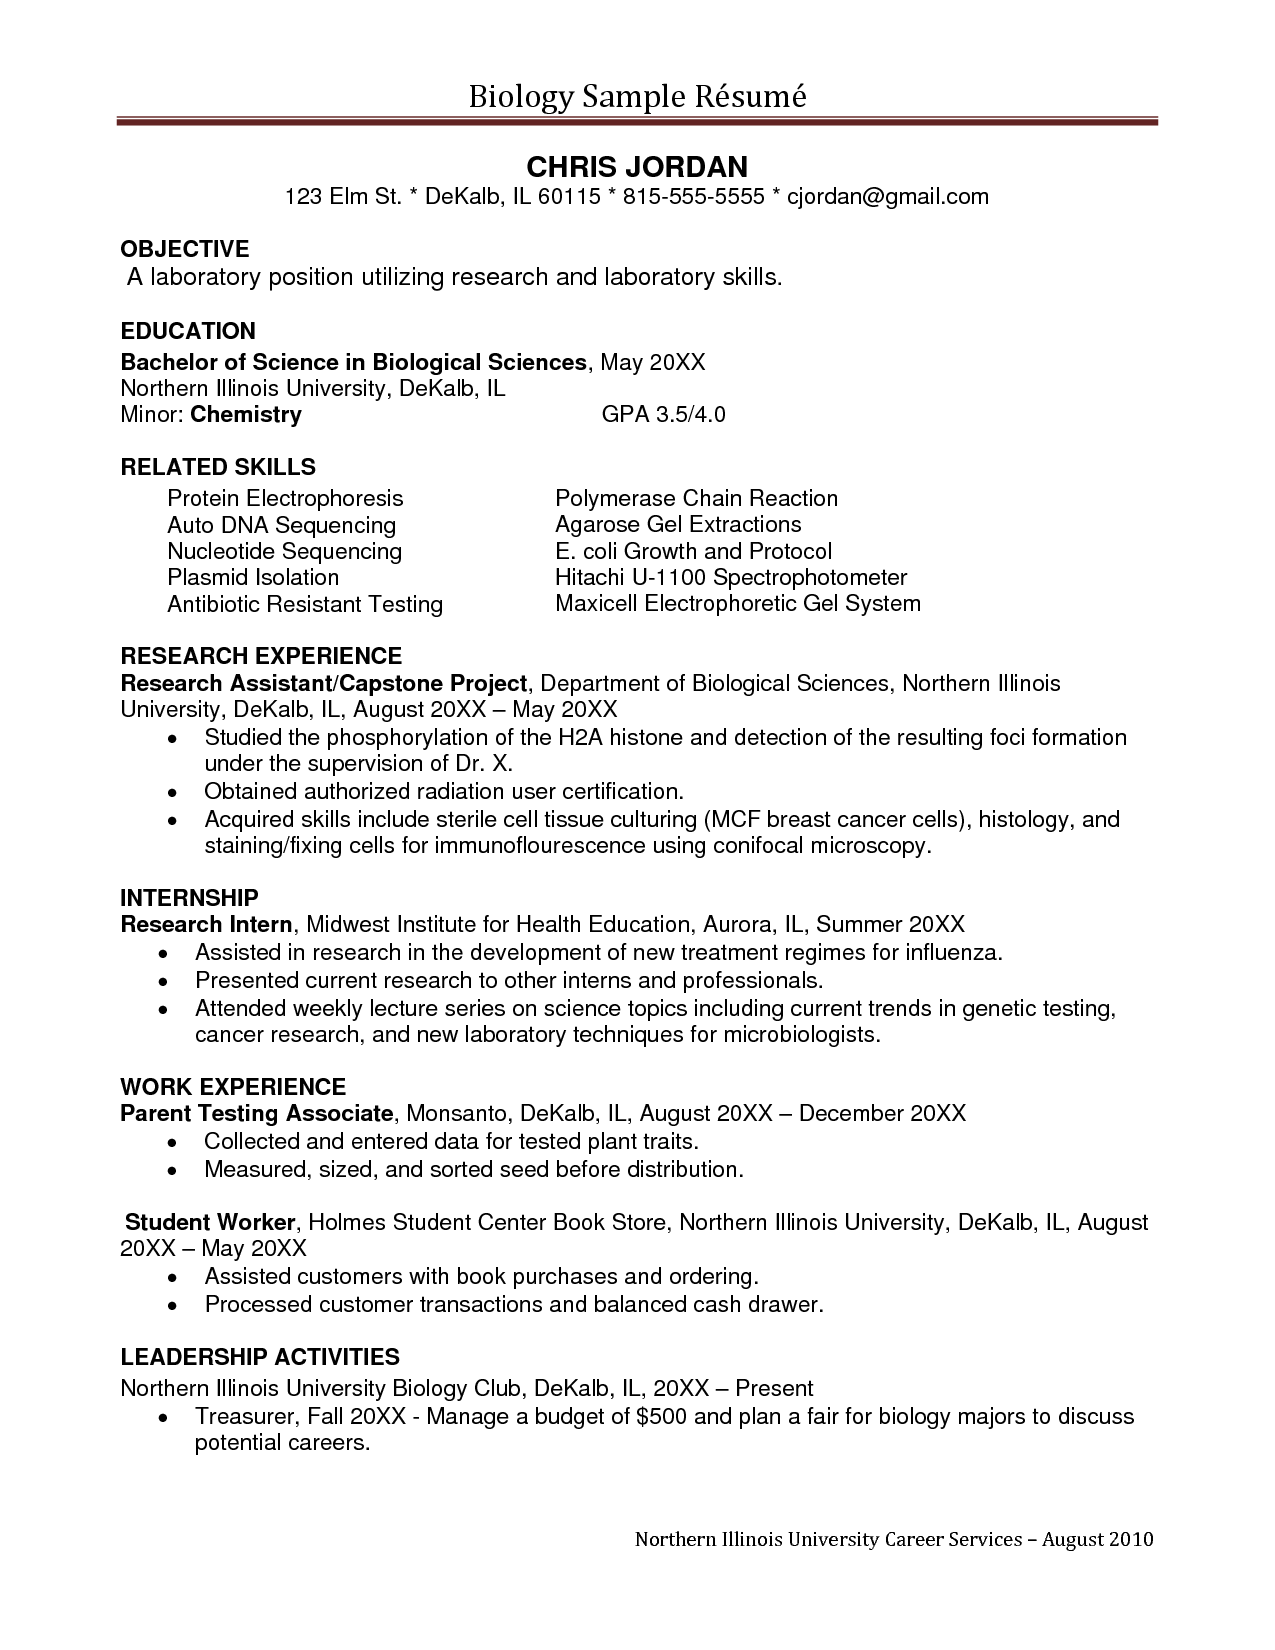 Sample, Undergraduate Research Assistant Resume Sample,ĺ Administrative  Assistant Resume Objective Examples, Medical  Resume Objectives For Administrative Assistant